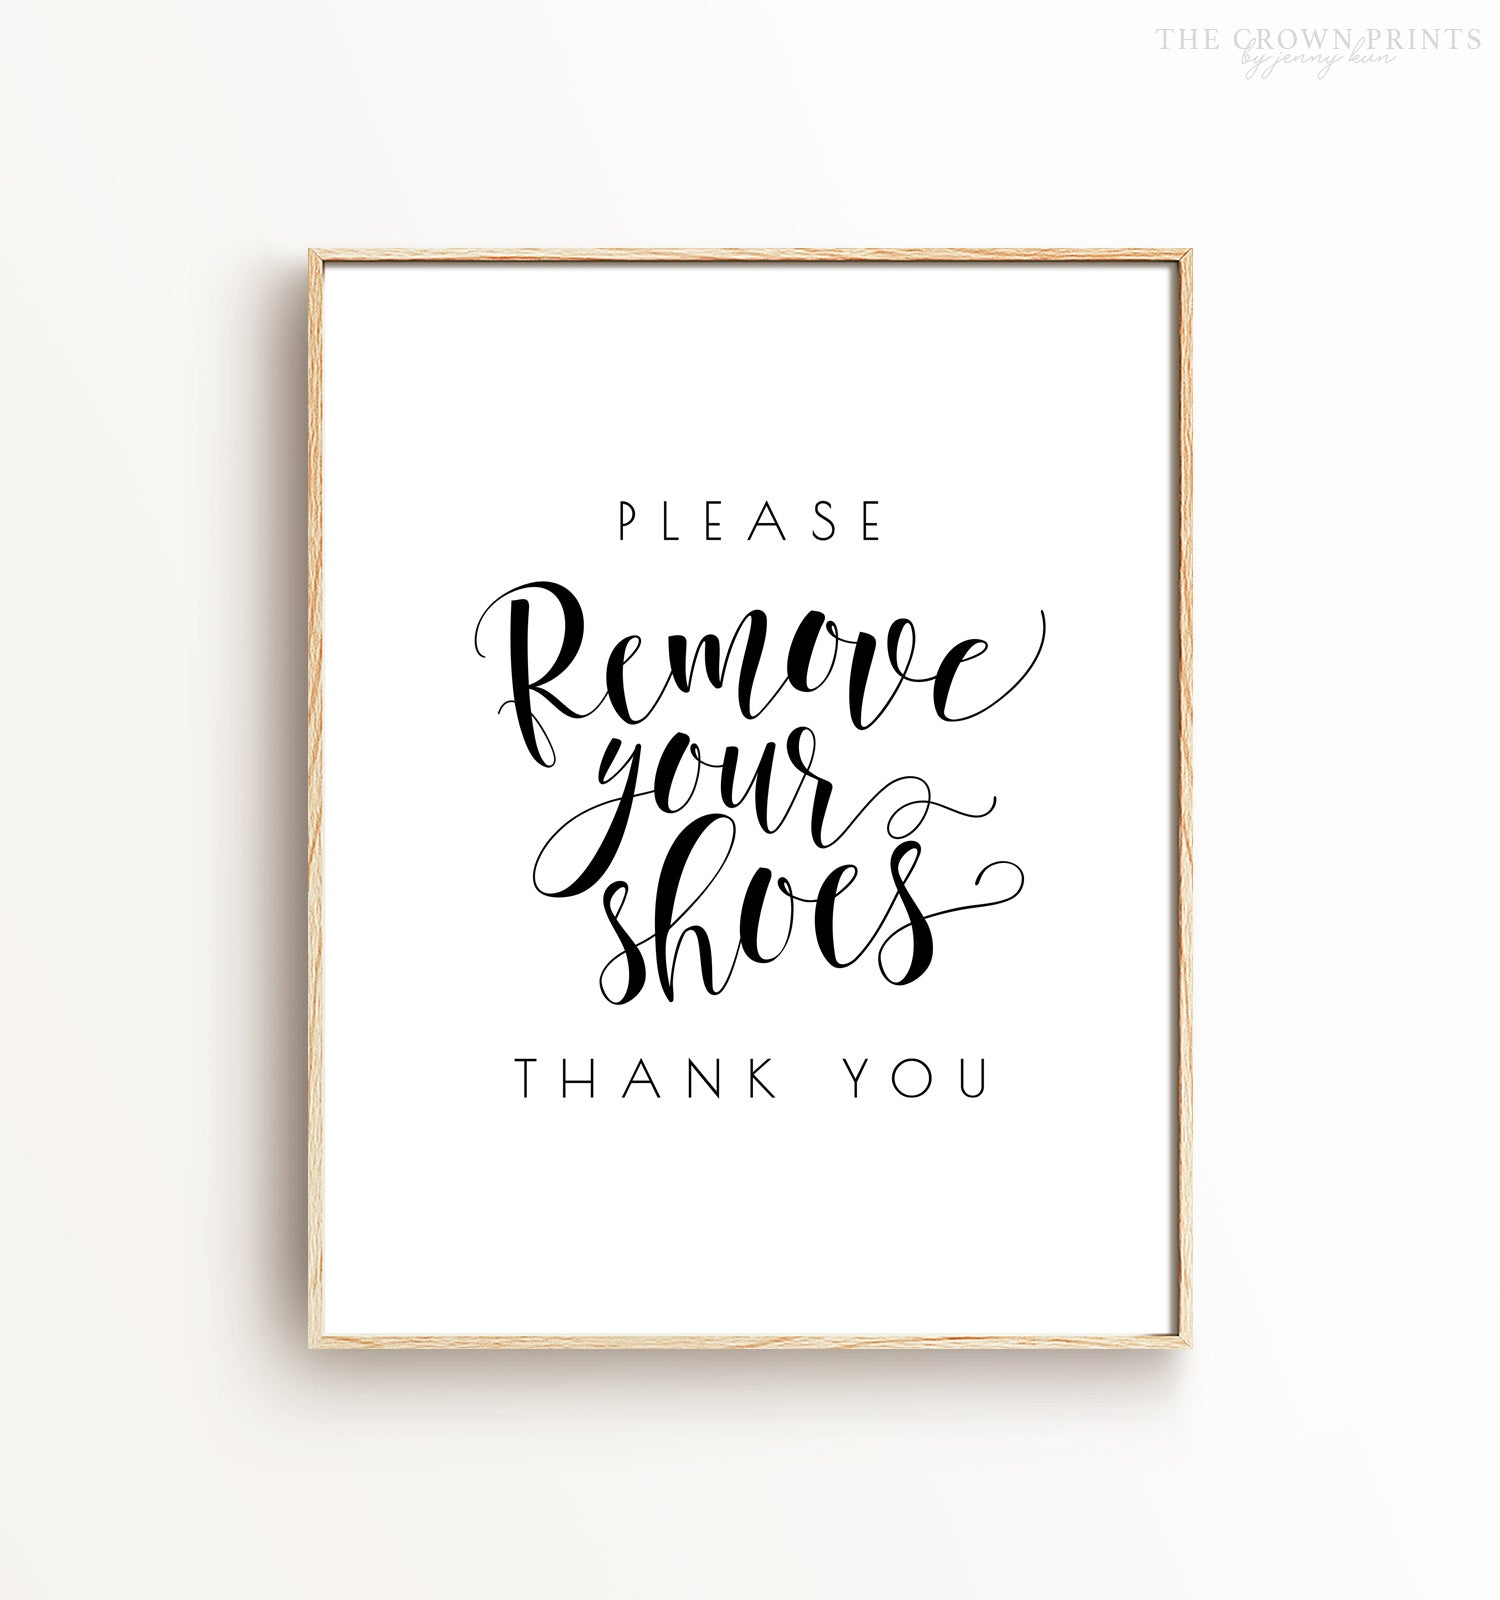 photograph regarding Please Remove Your Shoes Sign Printable named Make sure you Clear away Your Sneakers Printable Artwork